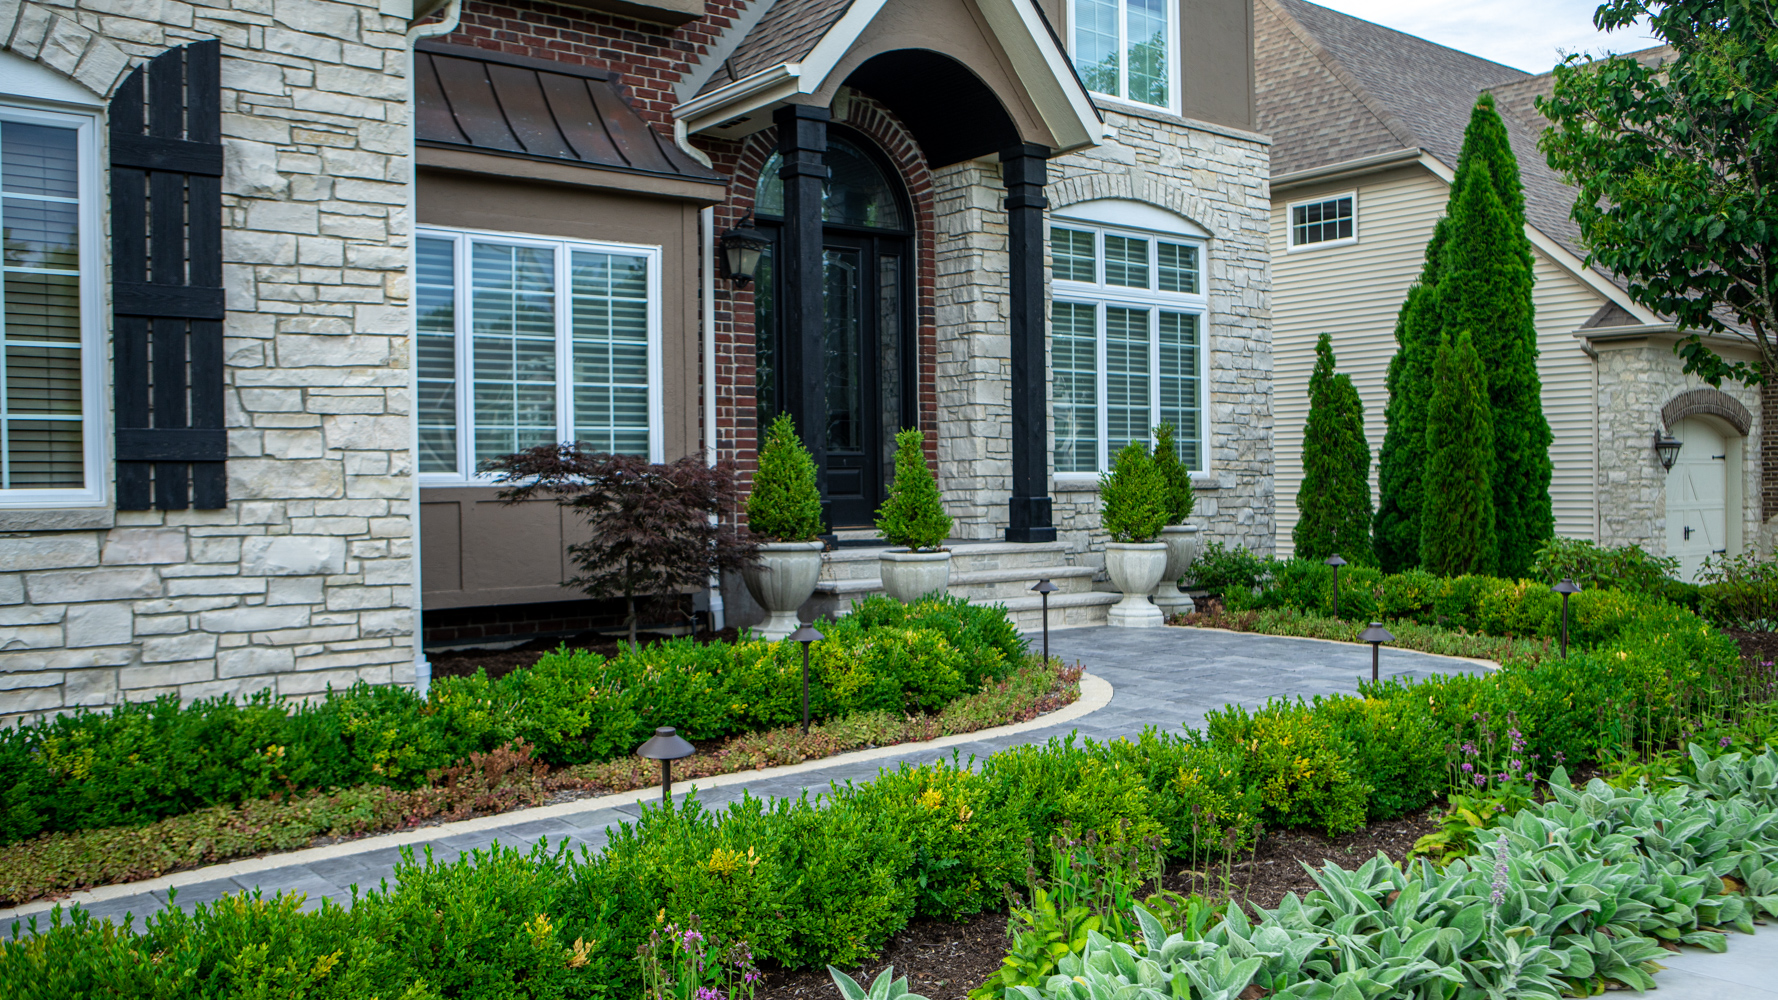 5 Questions to Ask During a Landscape Design Consultation